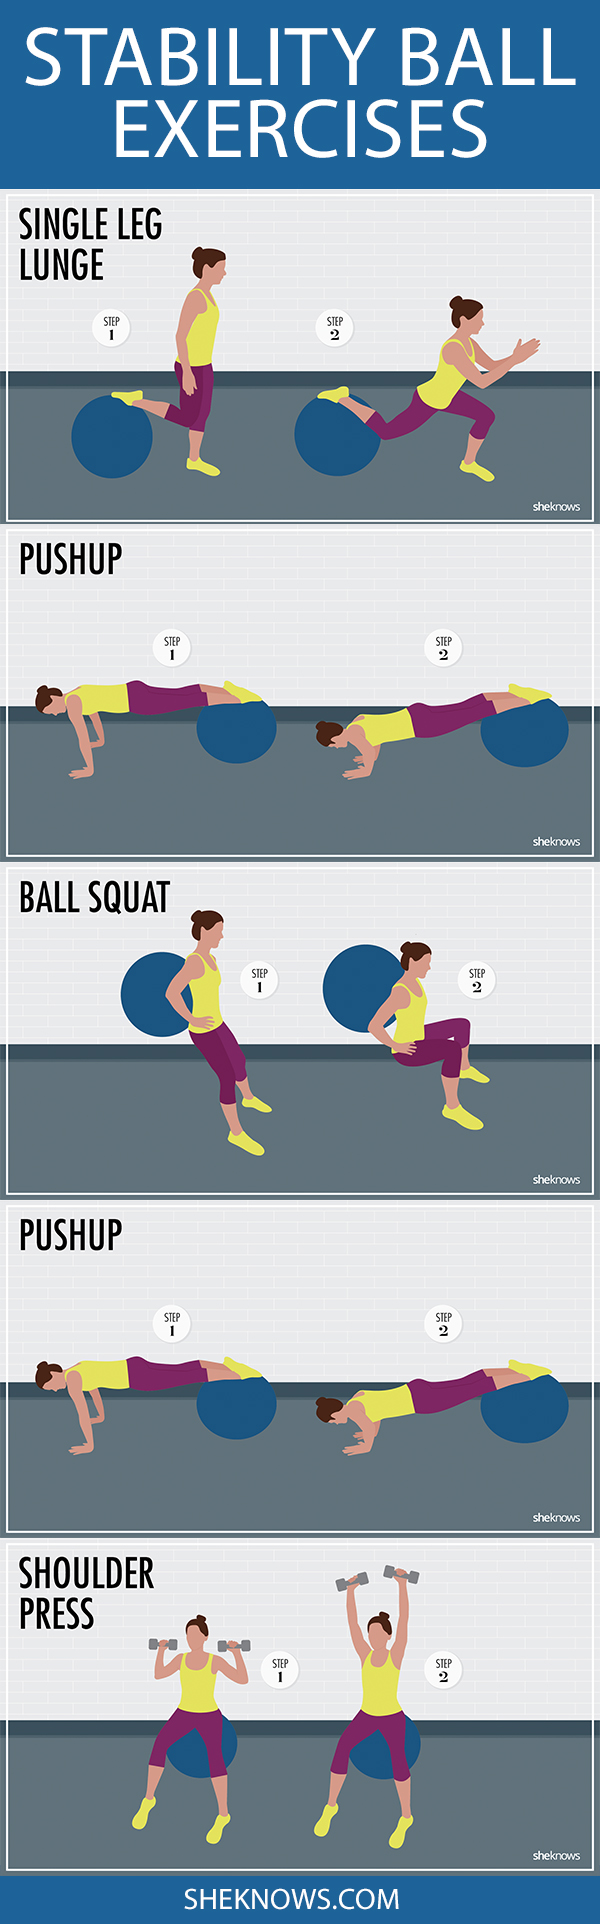 Pin it! Stability ball exercises for every body part